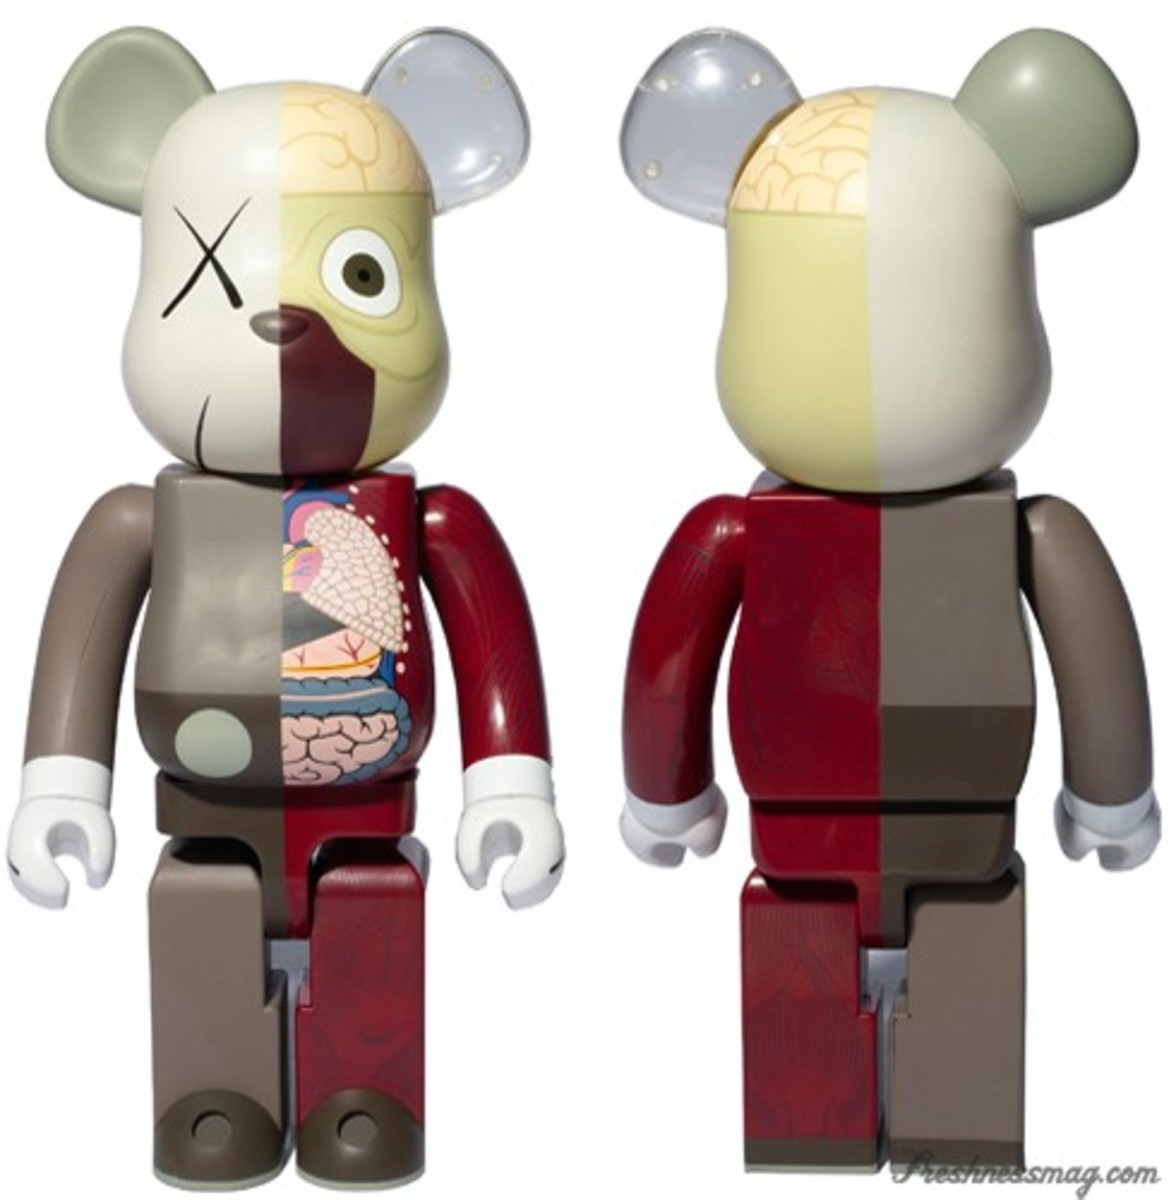 OriginalFake x MEDICOM TOY CO - KAWS Dissected Companion BE@RBRICK | Confirmed Colorway